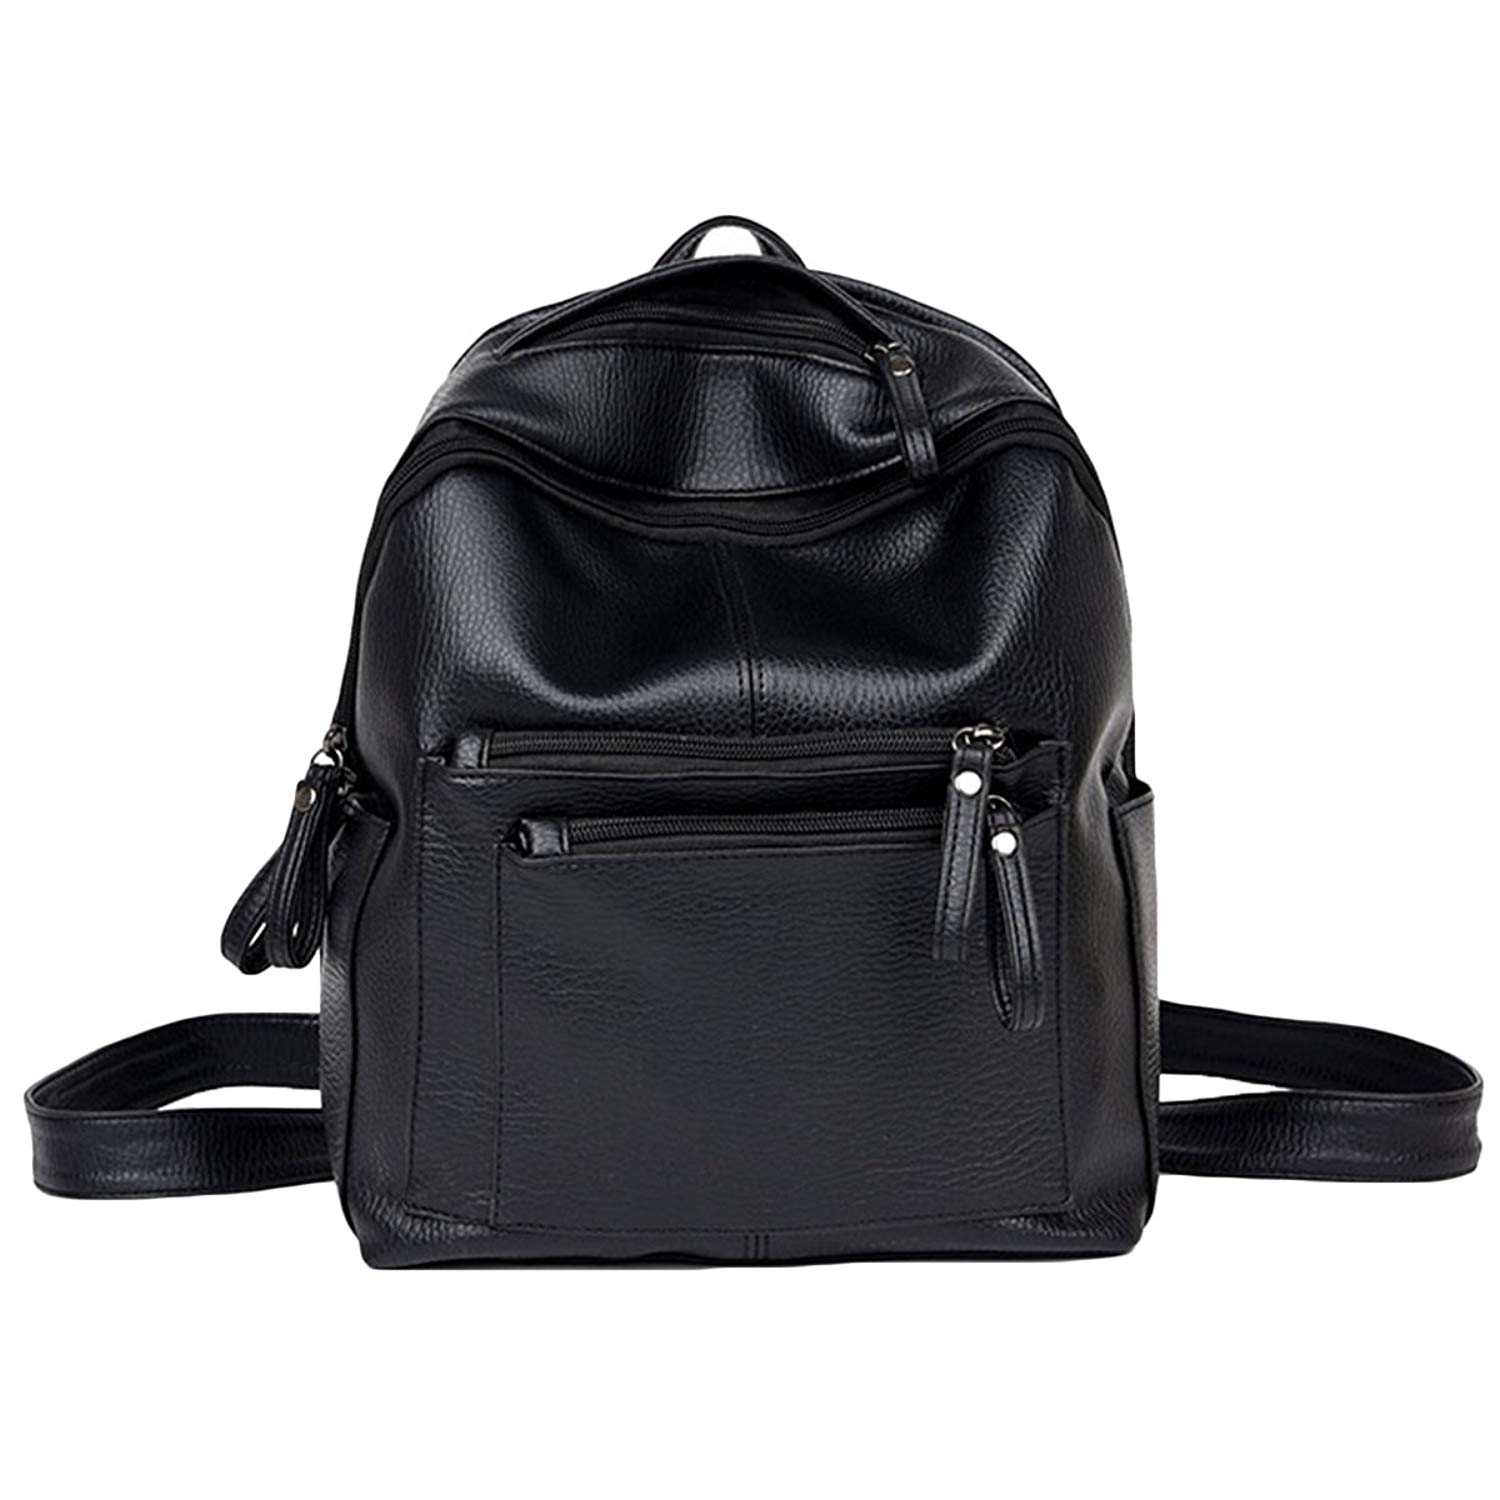 86427b7dce Get Quotations · ABage Women s Backpack Purse Chic Soft Faux Leather College  Backpack Travel Daypack